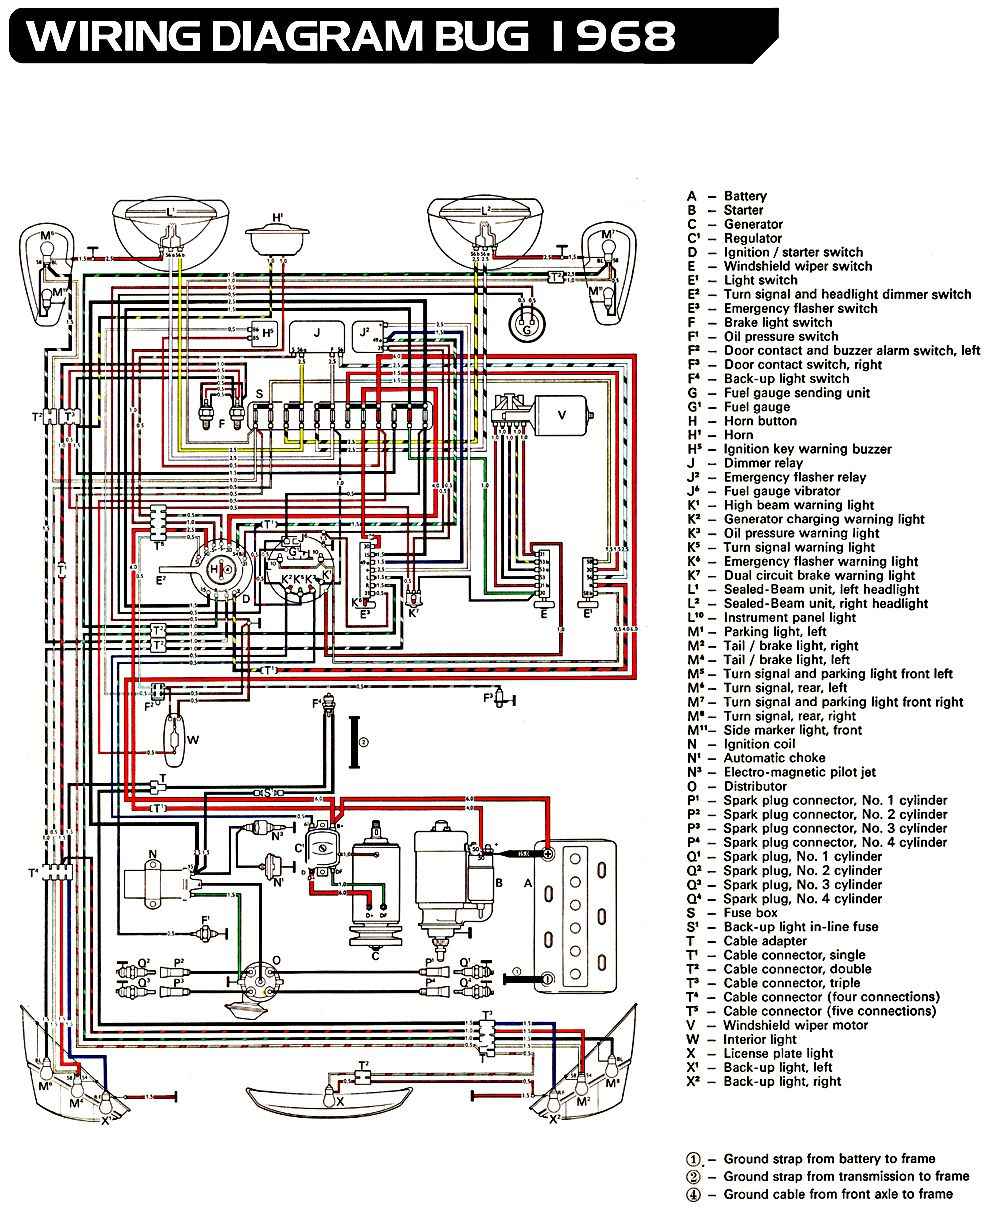 hight resolution of vw bug ignition wiring diagram 73 vw wiring diagram free vw 73 vw beetle coil wiring 73 vw bug ignition wiring